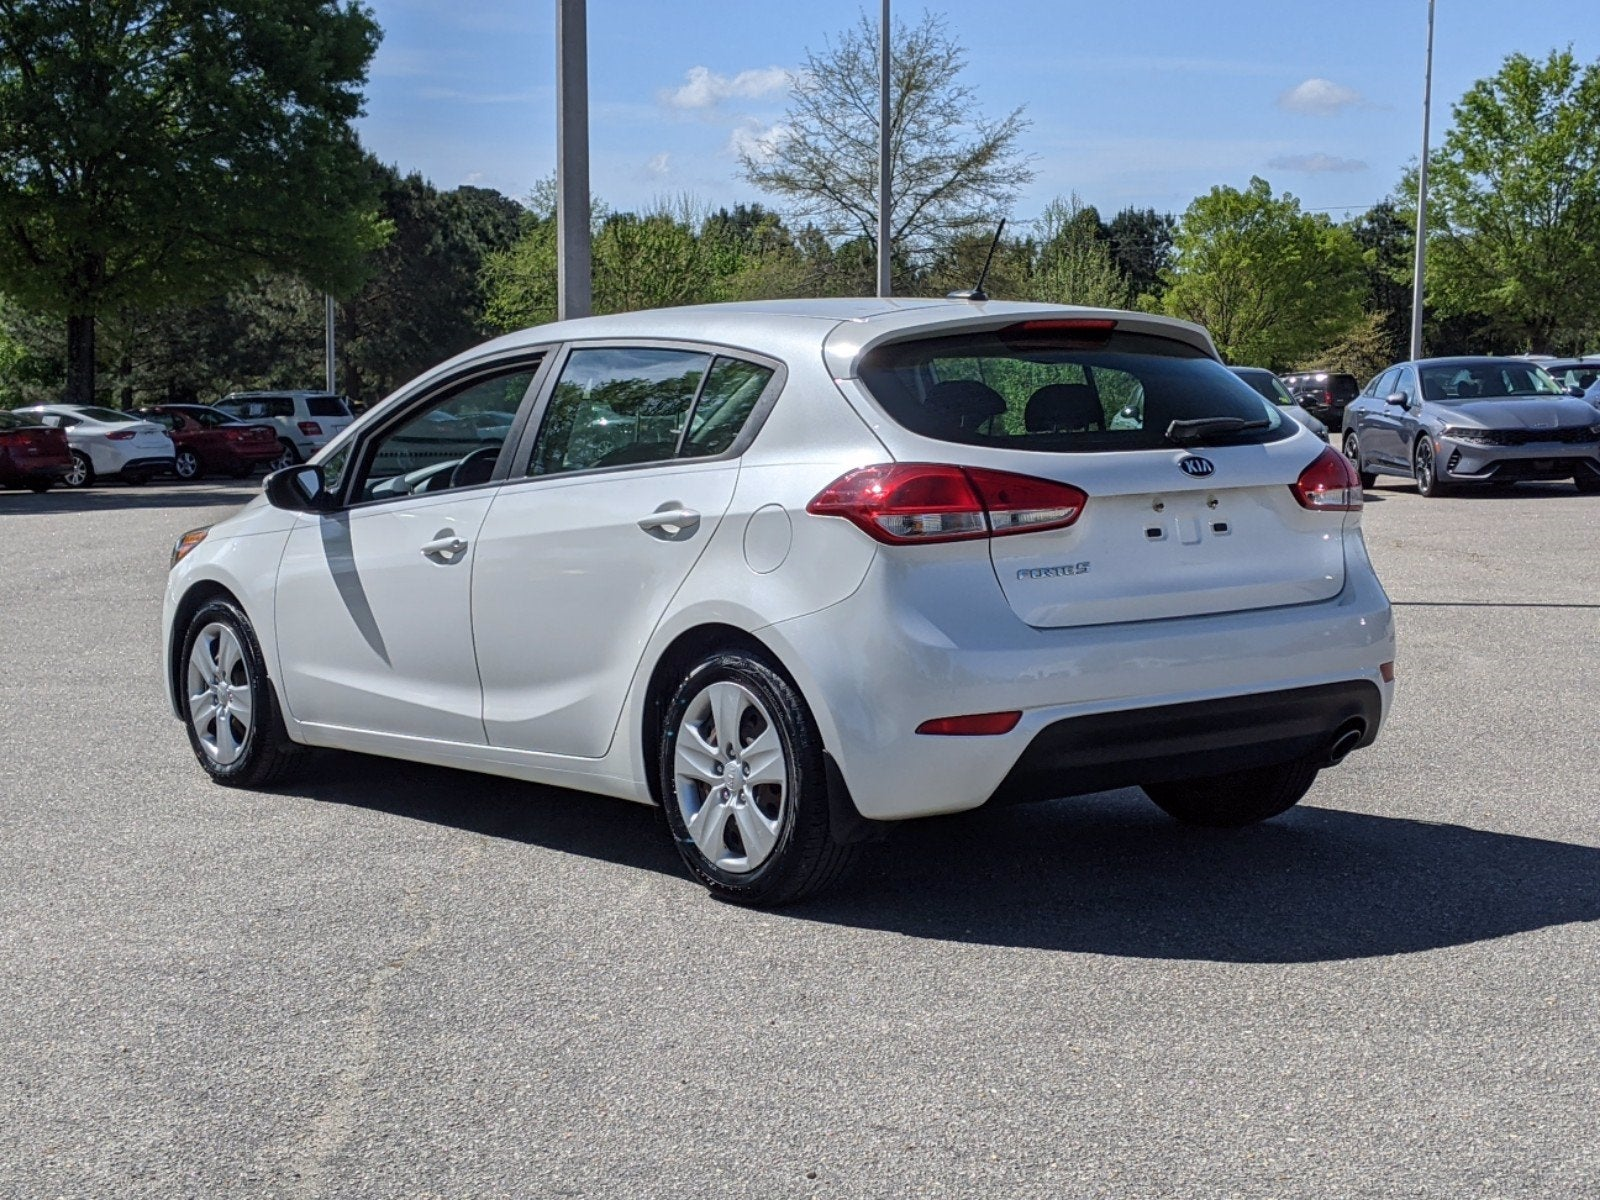 2016 Kia Forte 5 Door 5dr HB Auto LX In Raleigh, NC   Leith